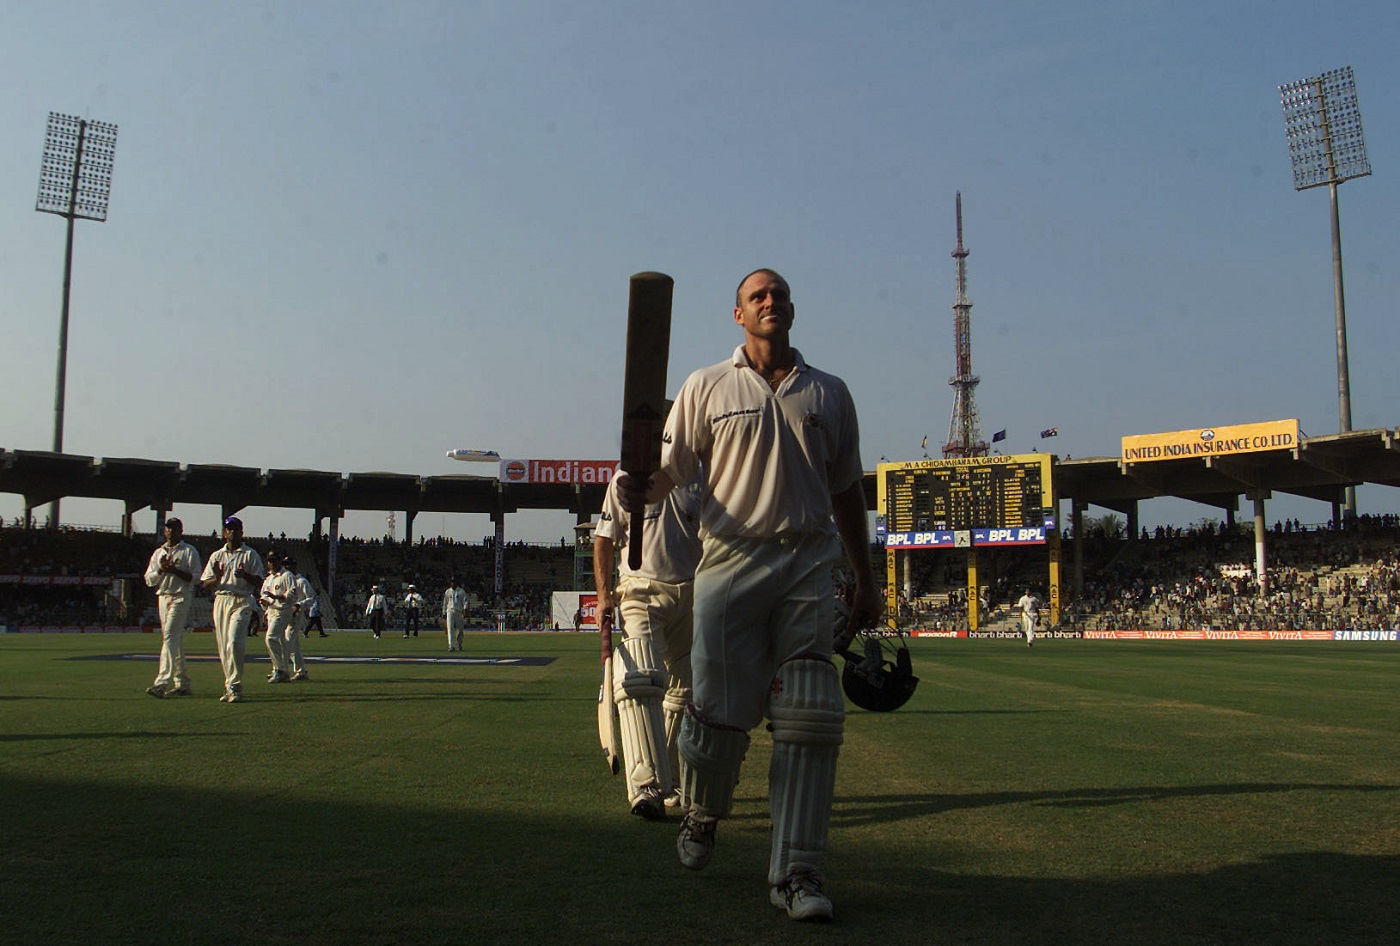 Hungry for runs: the 203 in Chennai was Matthew Hayden's first Test double-century. He went on to score a triple two years later